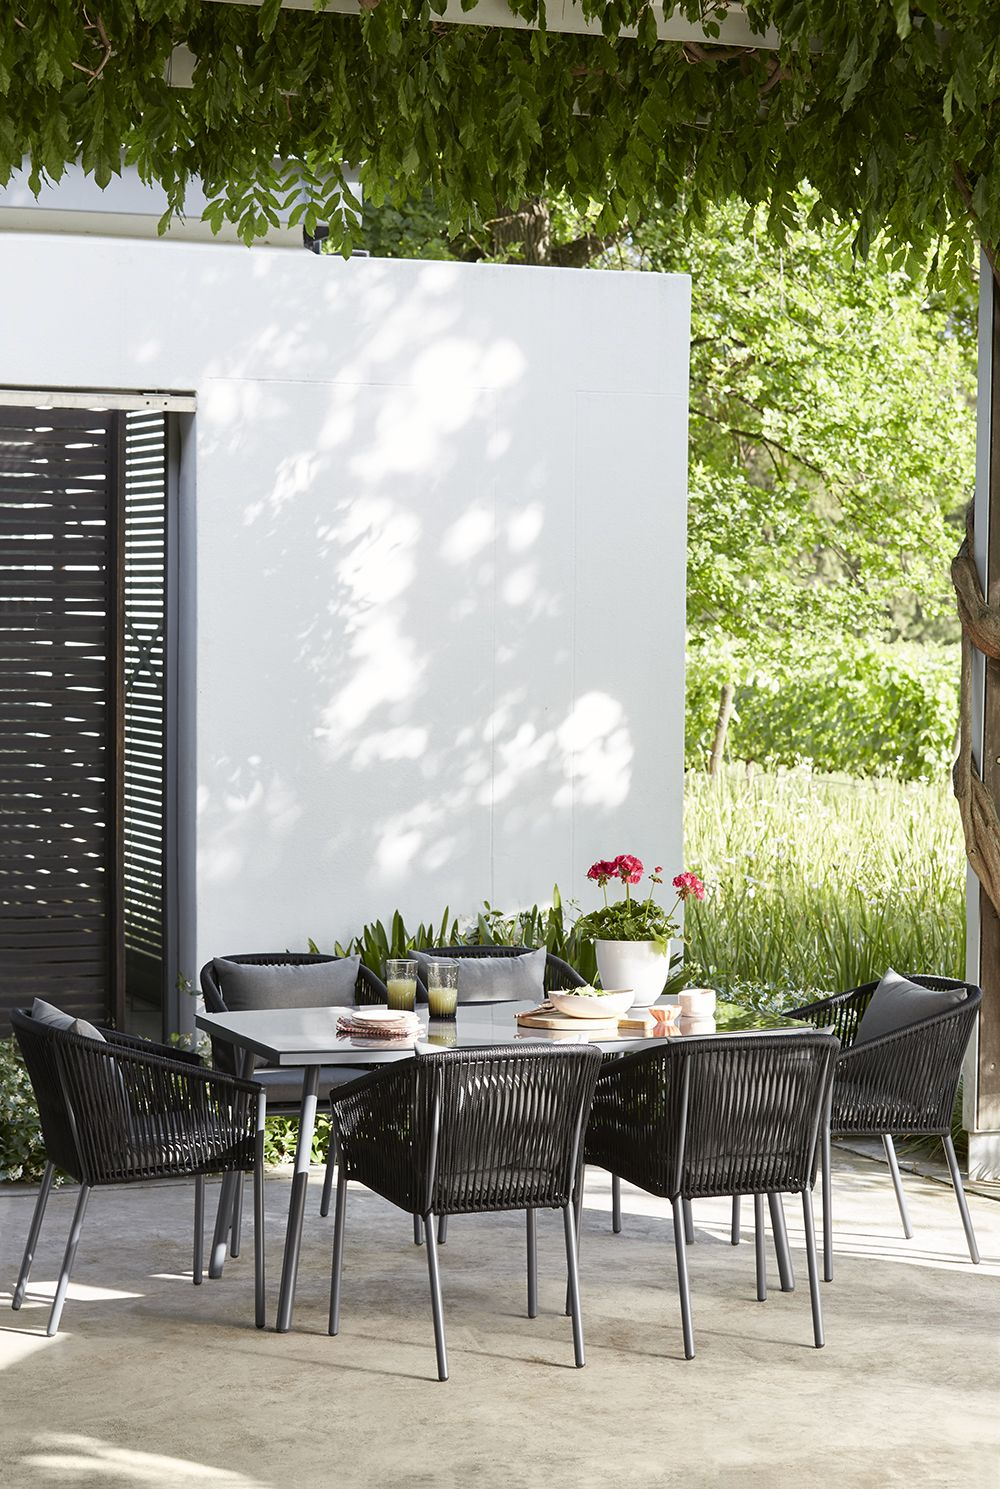 Outdoor living collection 2018 by homebase this six seater matara dining set combines powder coated steel frames with knitted textiline